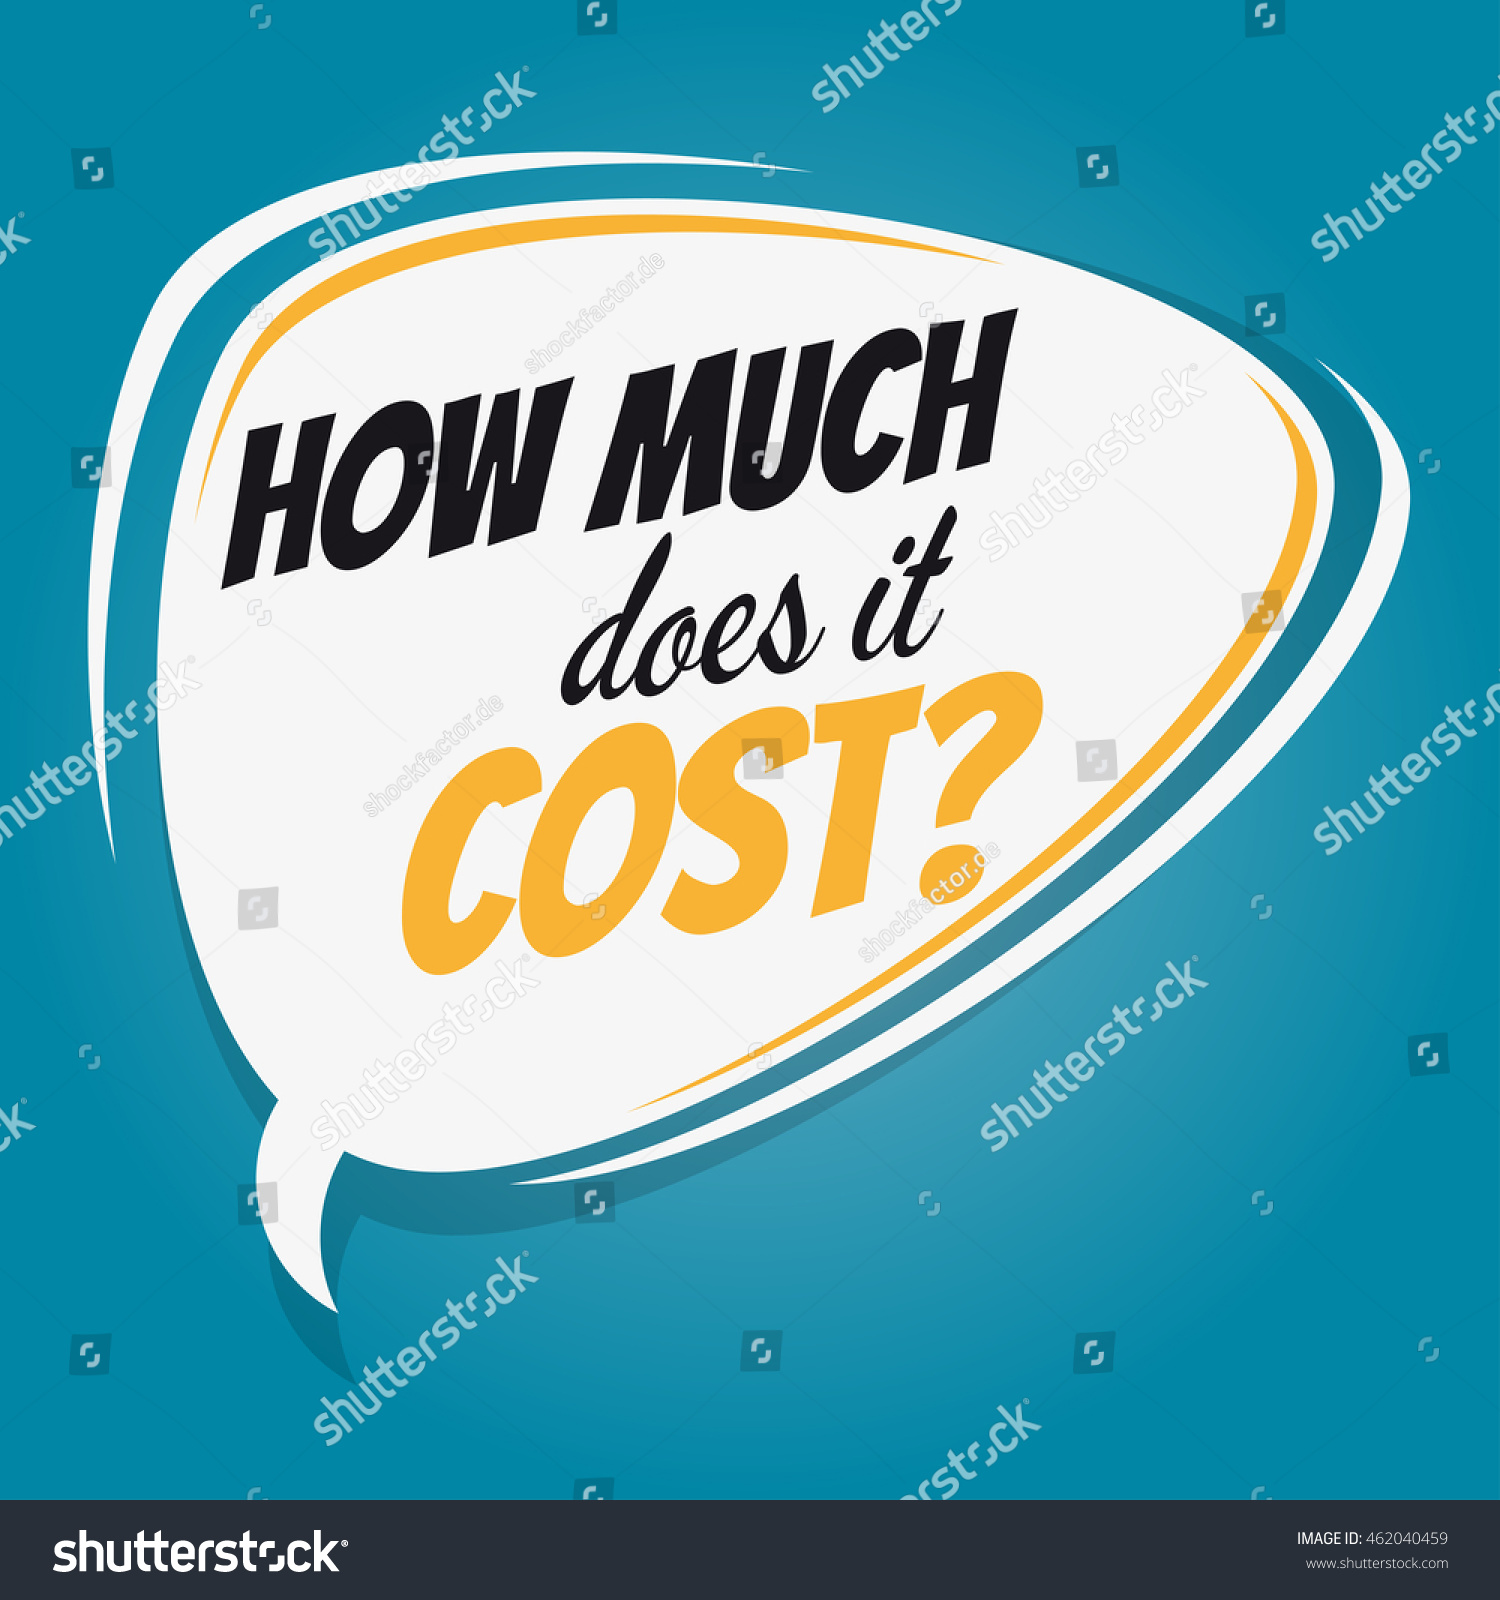 How Much Does Cost Retro Speech Stock Vector 462040459